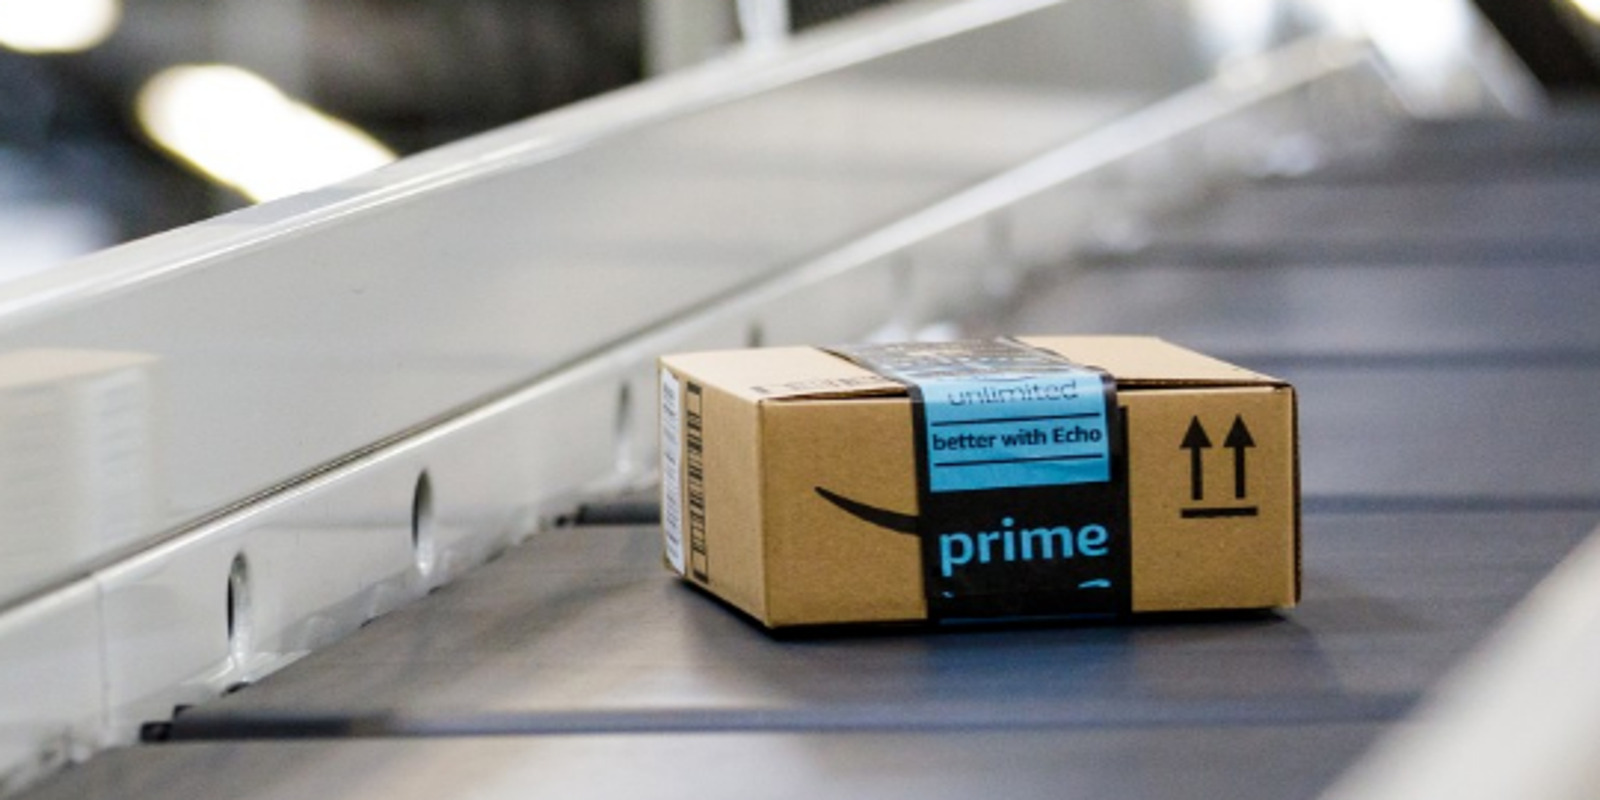 AmazonFresh grocery delivery launches in Indianapolis on